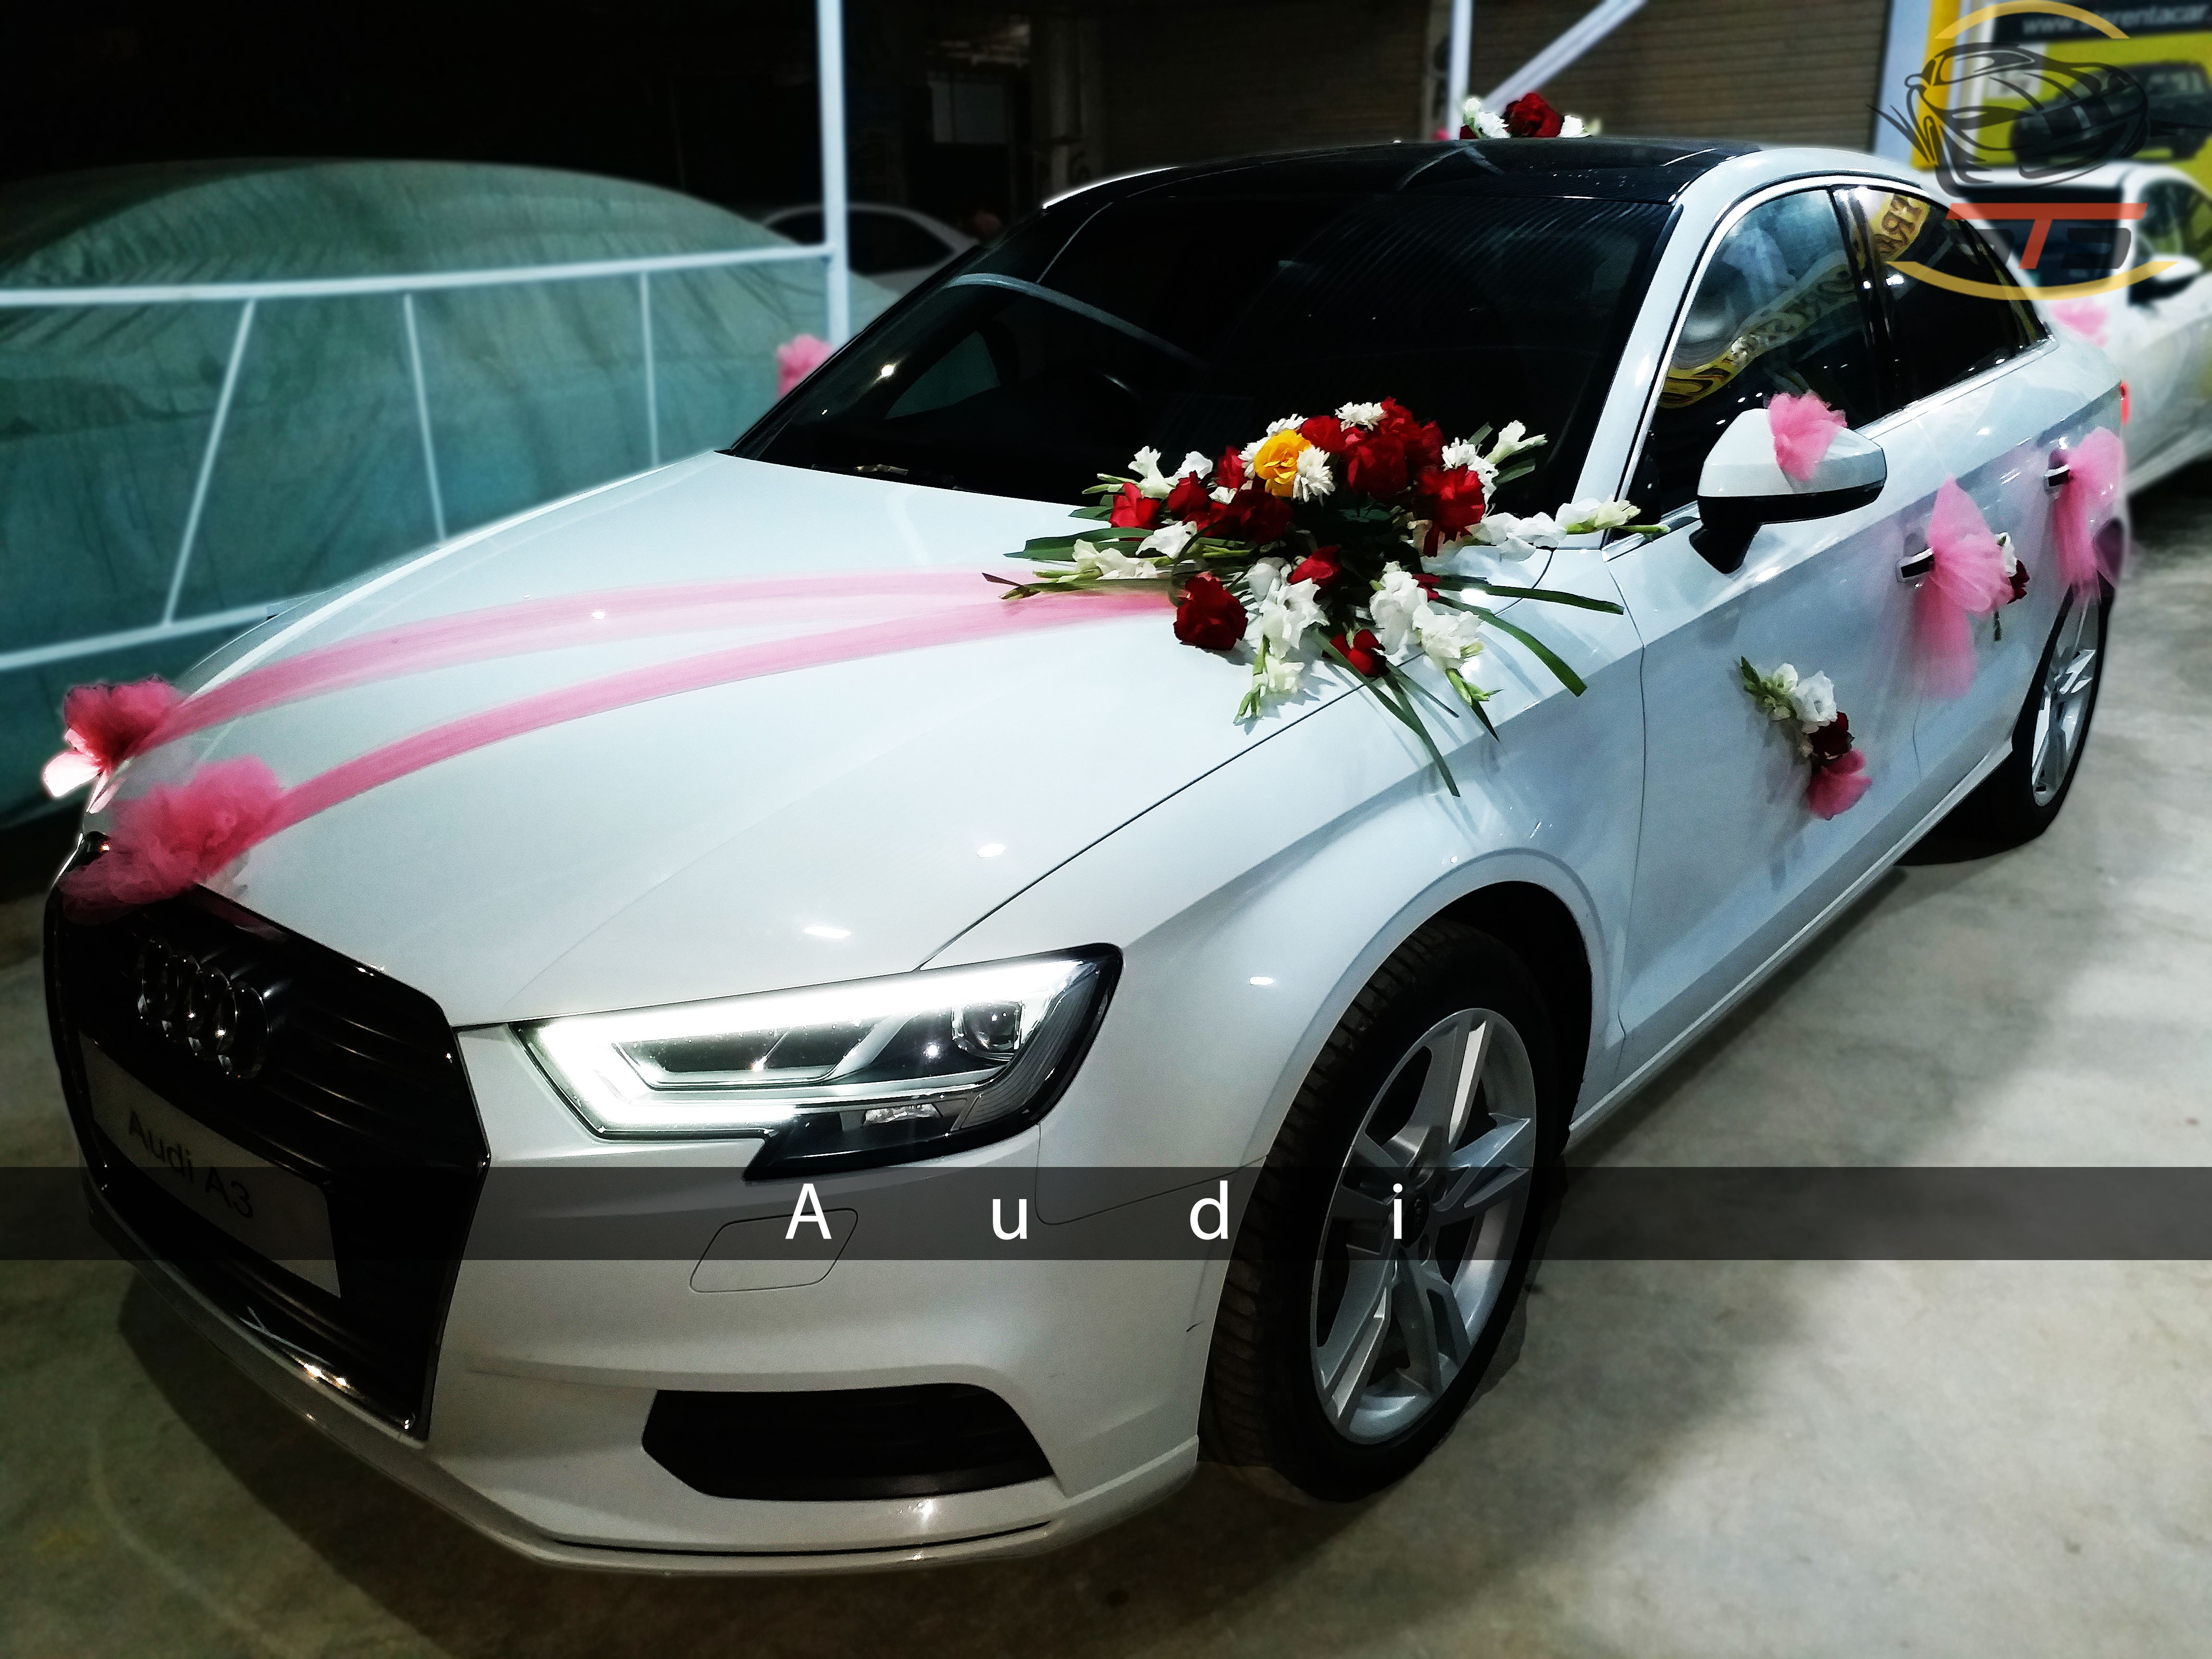 Brand New Audi 2018 Model Is Available For Your Wedding Nikkah Valima S Occasions And On Your Services Call Us 03 111 999 787 S Audi Rent A Car Audi Sedan